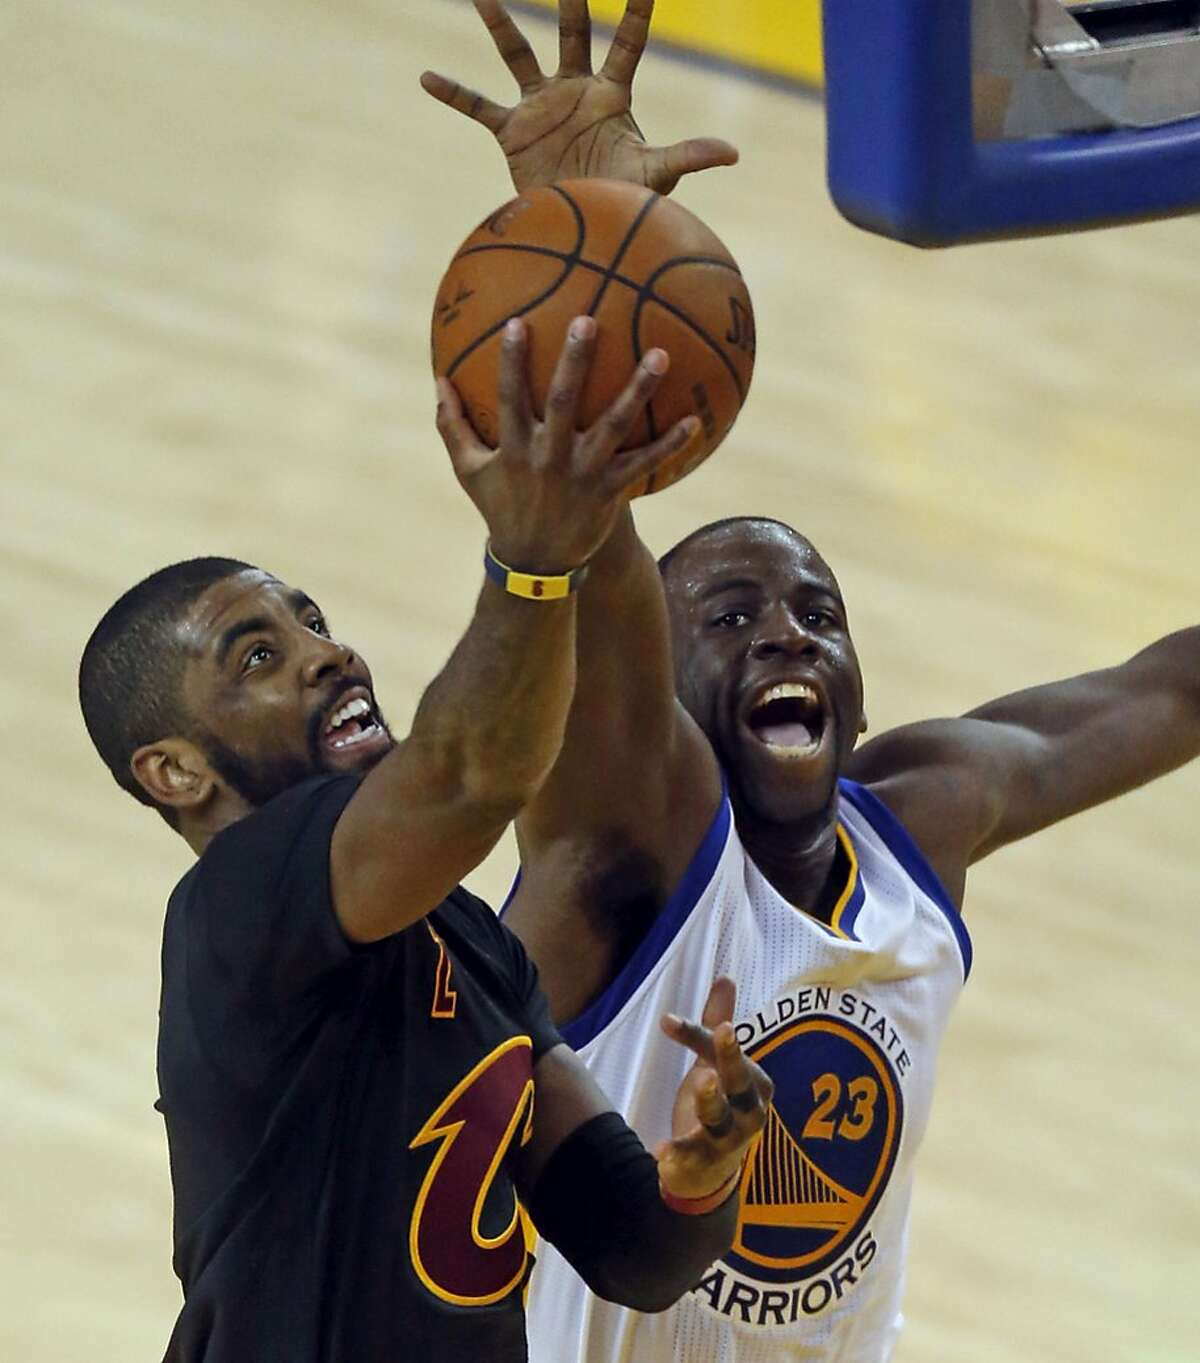 Golden State Warriors' Draymond Green can't stop Cleveland Cavaliers' Kyrie Irving in 3rd quarter of Game 7 of the NBA Finals at Oracle Arena in Oakland, Calif., on Sunday, June 19, 2016.